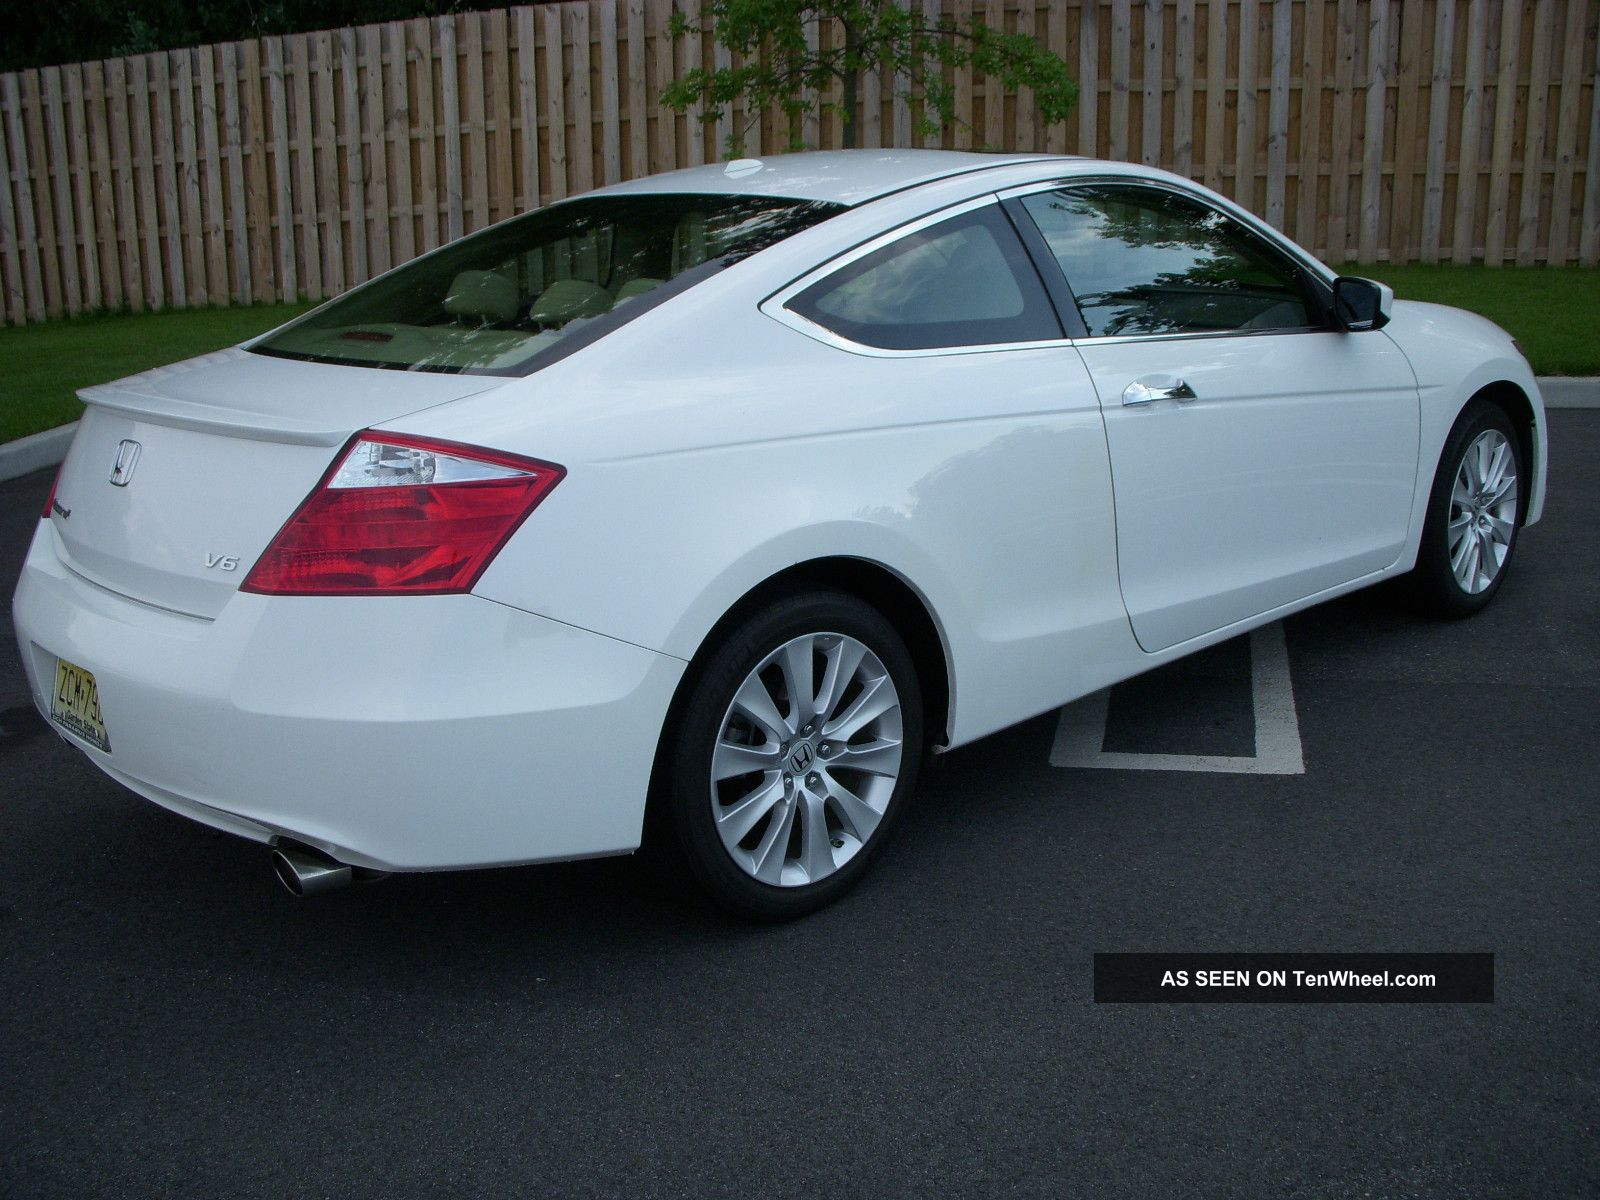 2009 Honda Accord Coupe 6 Cyl Ex L White With Tan Interior